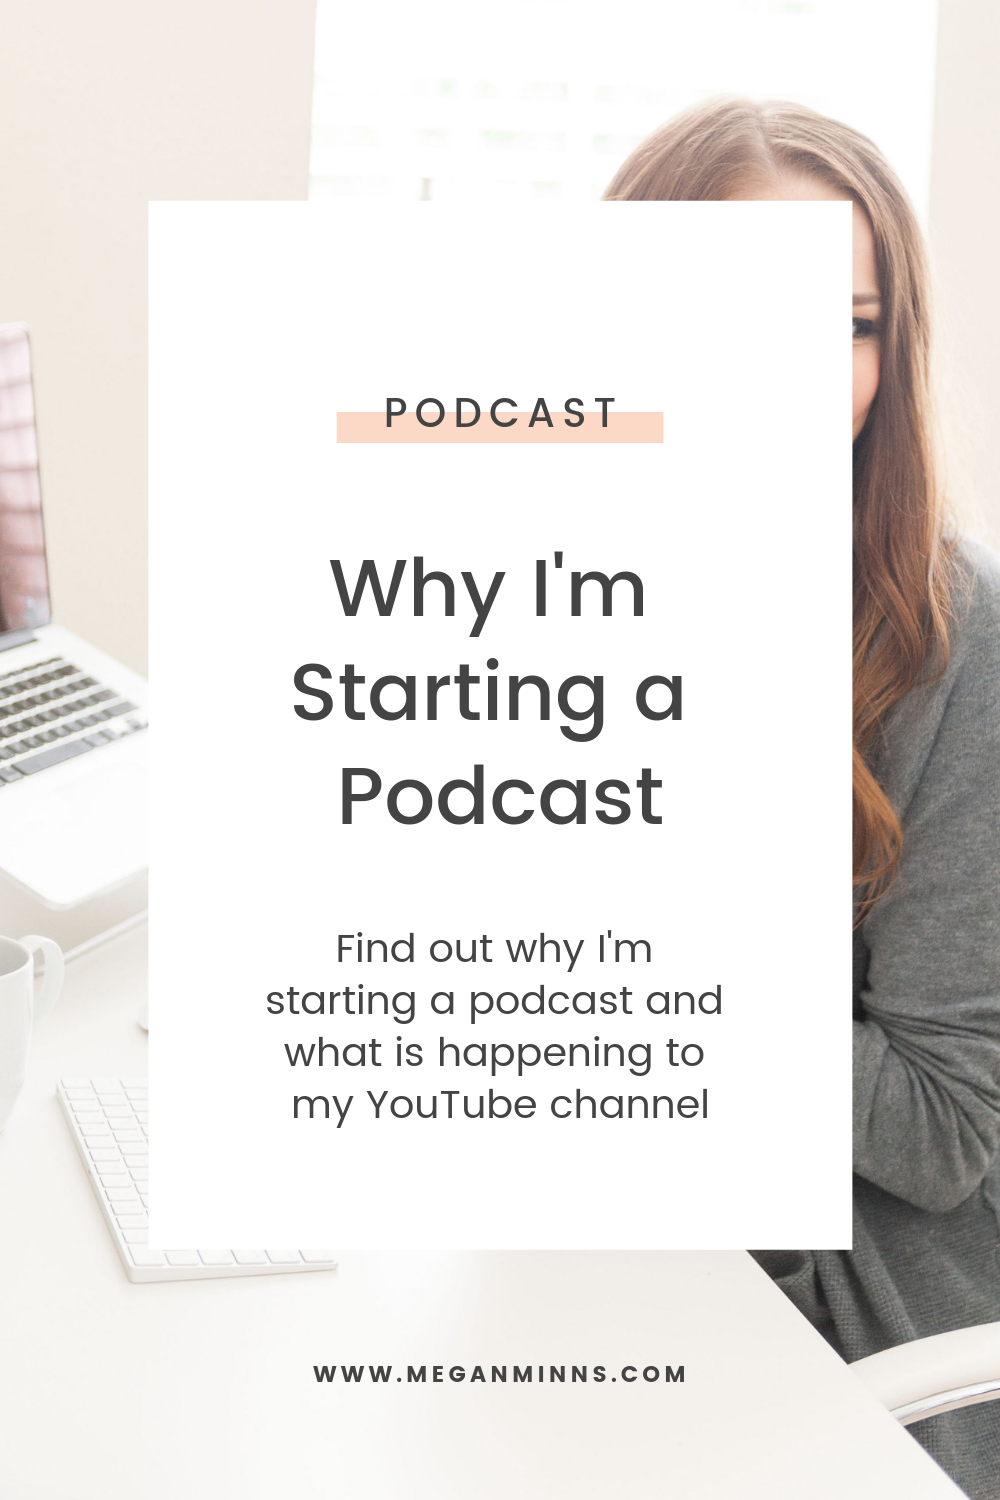 Why I'm Starting The Productive Life Podcast - you're going to see new podcast episodes every week from me all about productivity, time management, organization, business strategies, wellness, self-care, personal development, personal updates, and more! Head to MeganMinns.com/tpl (or wherever you listen to podcasts) to subscribe!